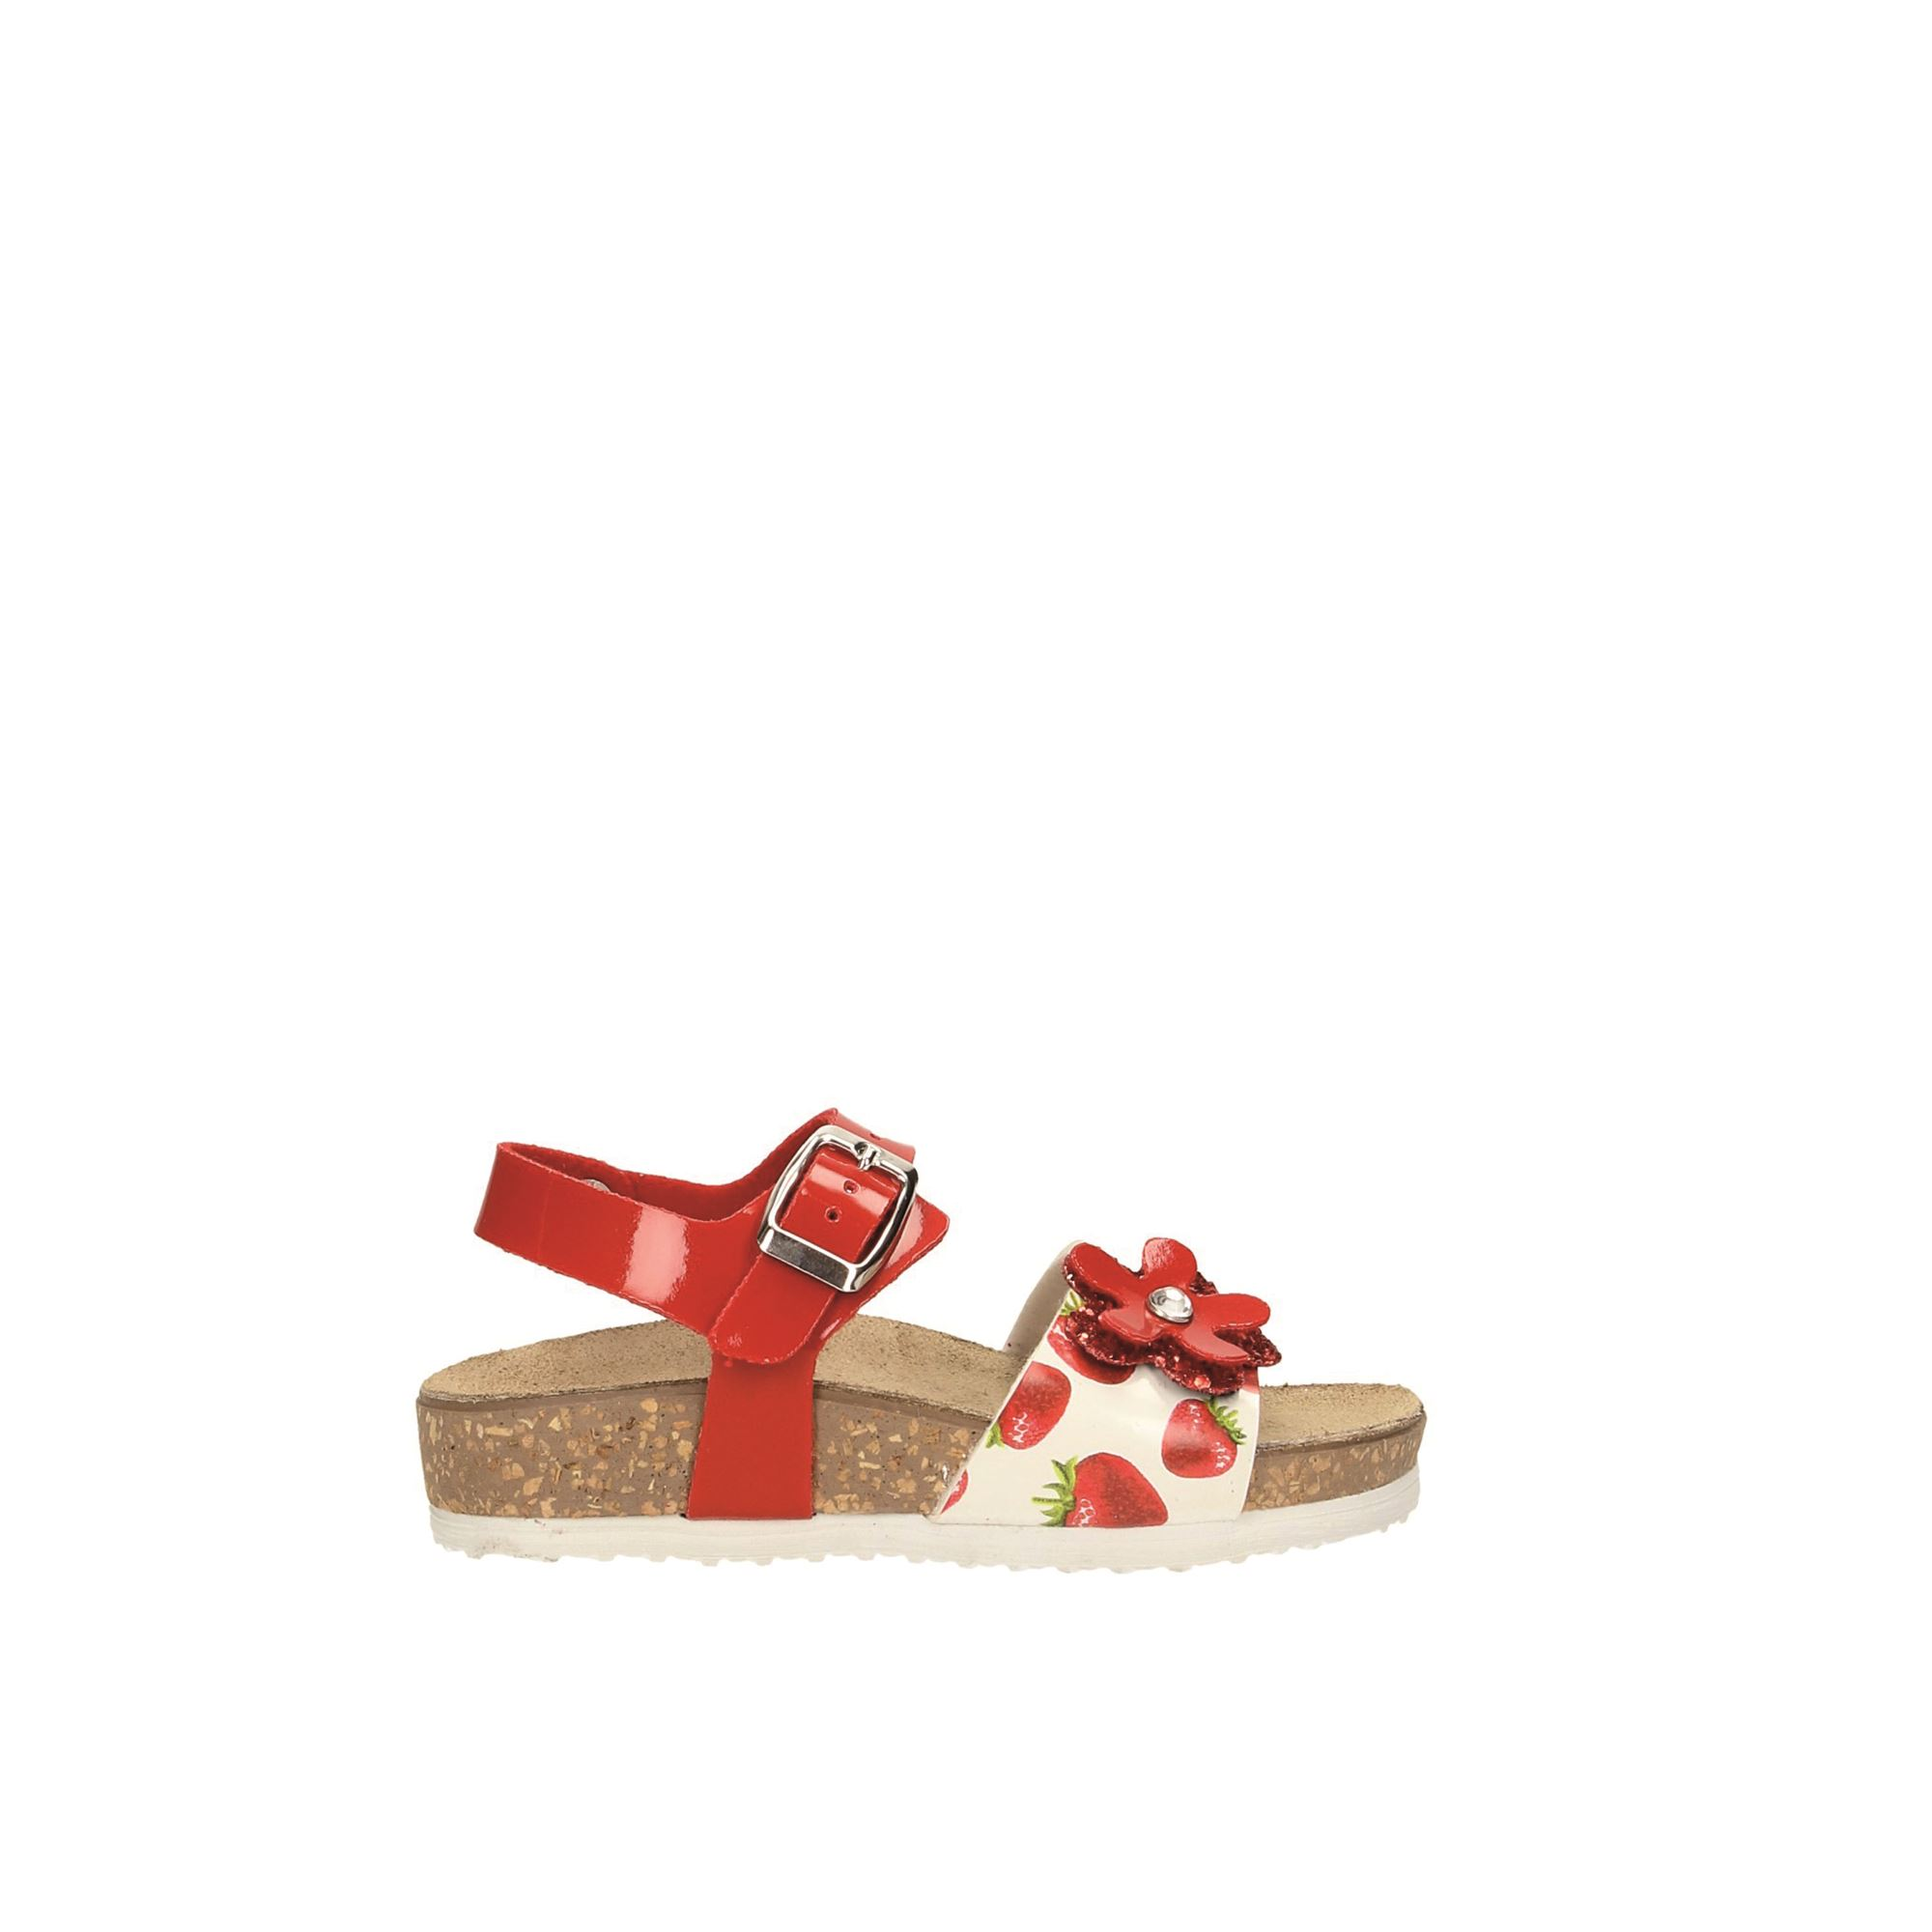 Tata Italia Shoes Junior Sandali Red/white 261487